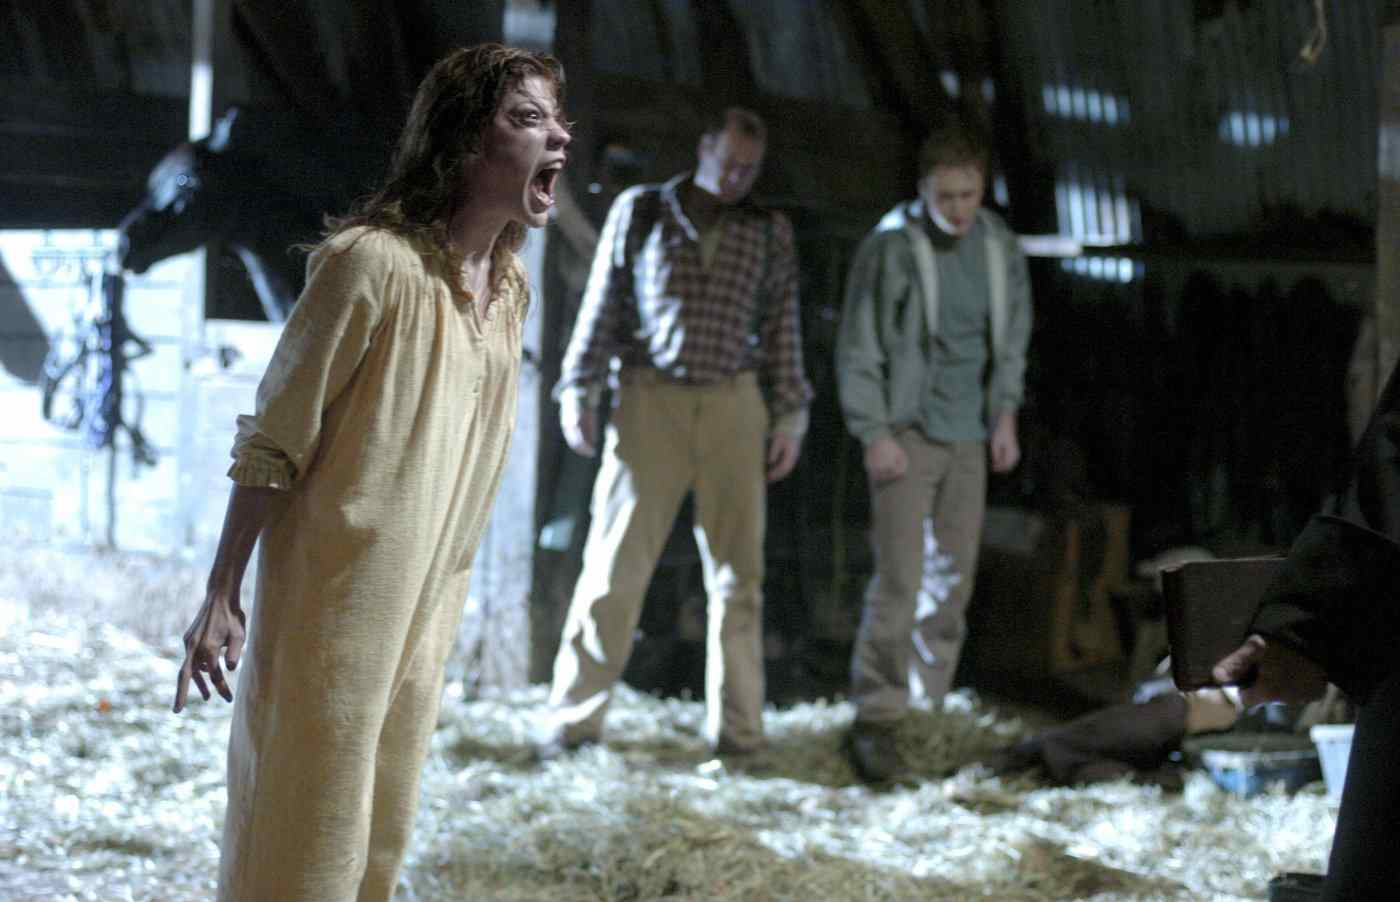 The Exorcism of Emily Rose directed by Scott Derrickson.